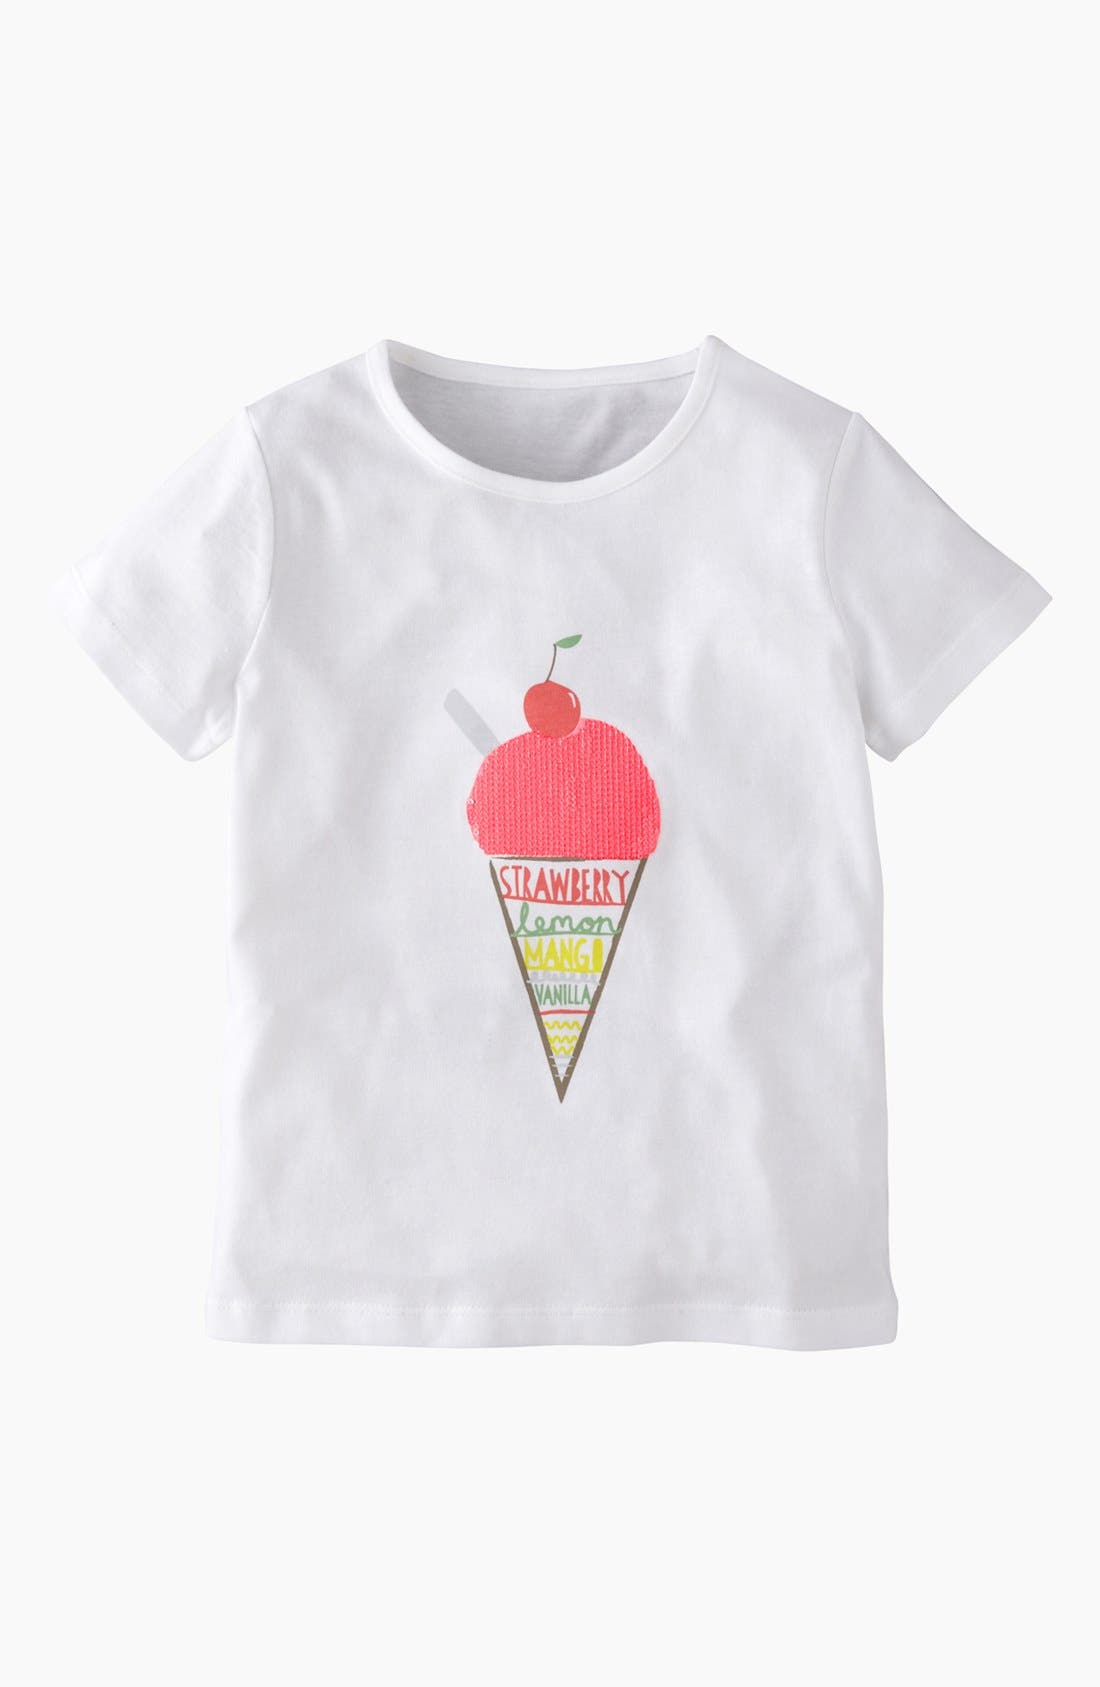 Alternate Image 1 Selected - Mini Boden 'Twinkly' Tee (Big Girls)